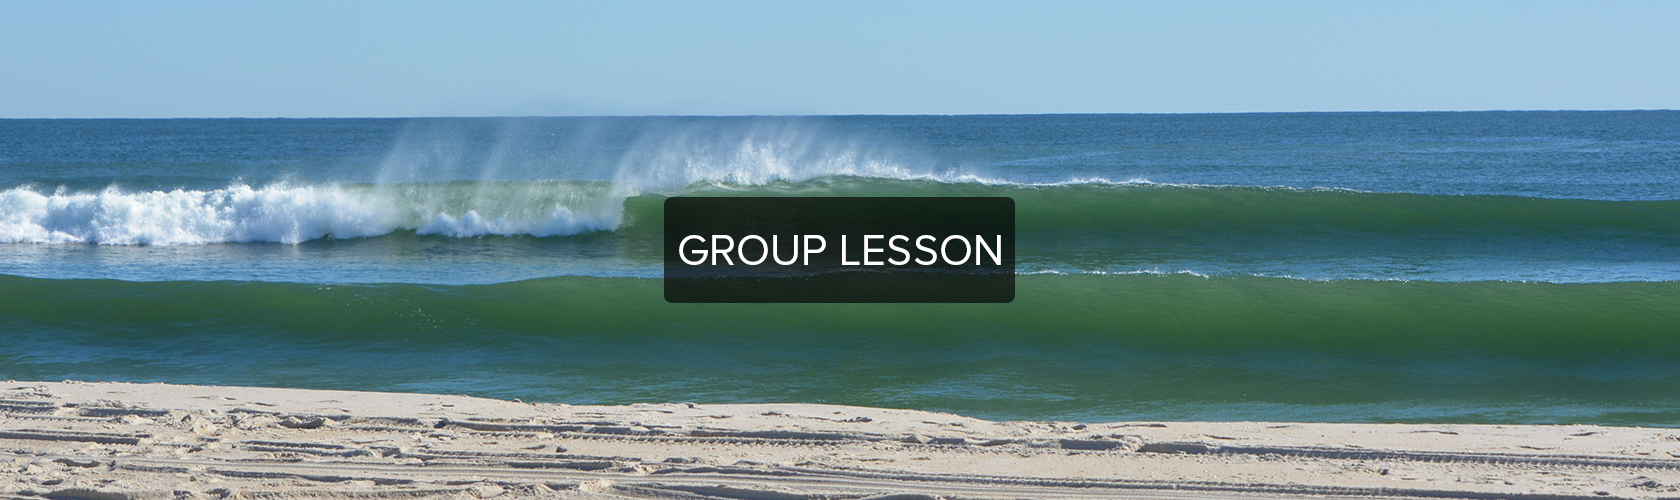 Group Lesson Slider 2018 4.jpg